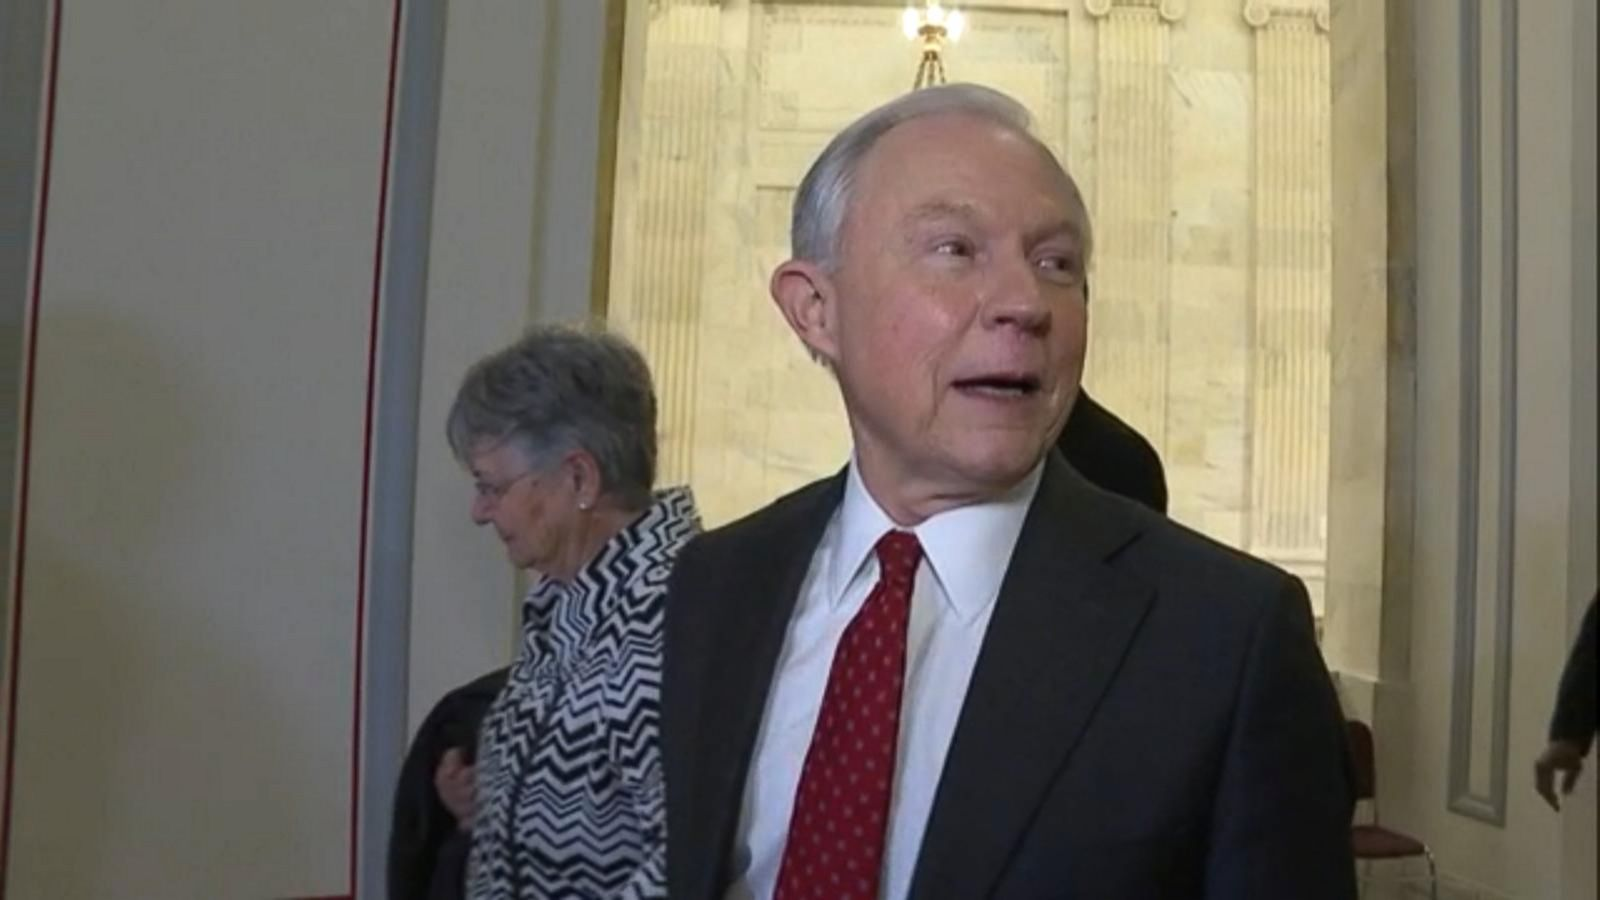 VIDEO: Day 1 of Sen. Sessions Confirmation Hearing Comes to a Close